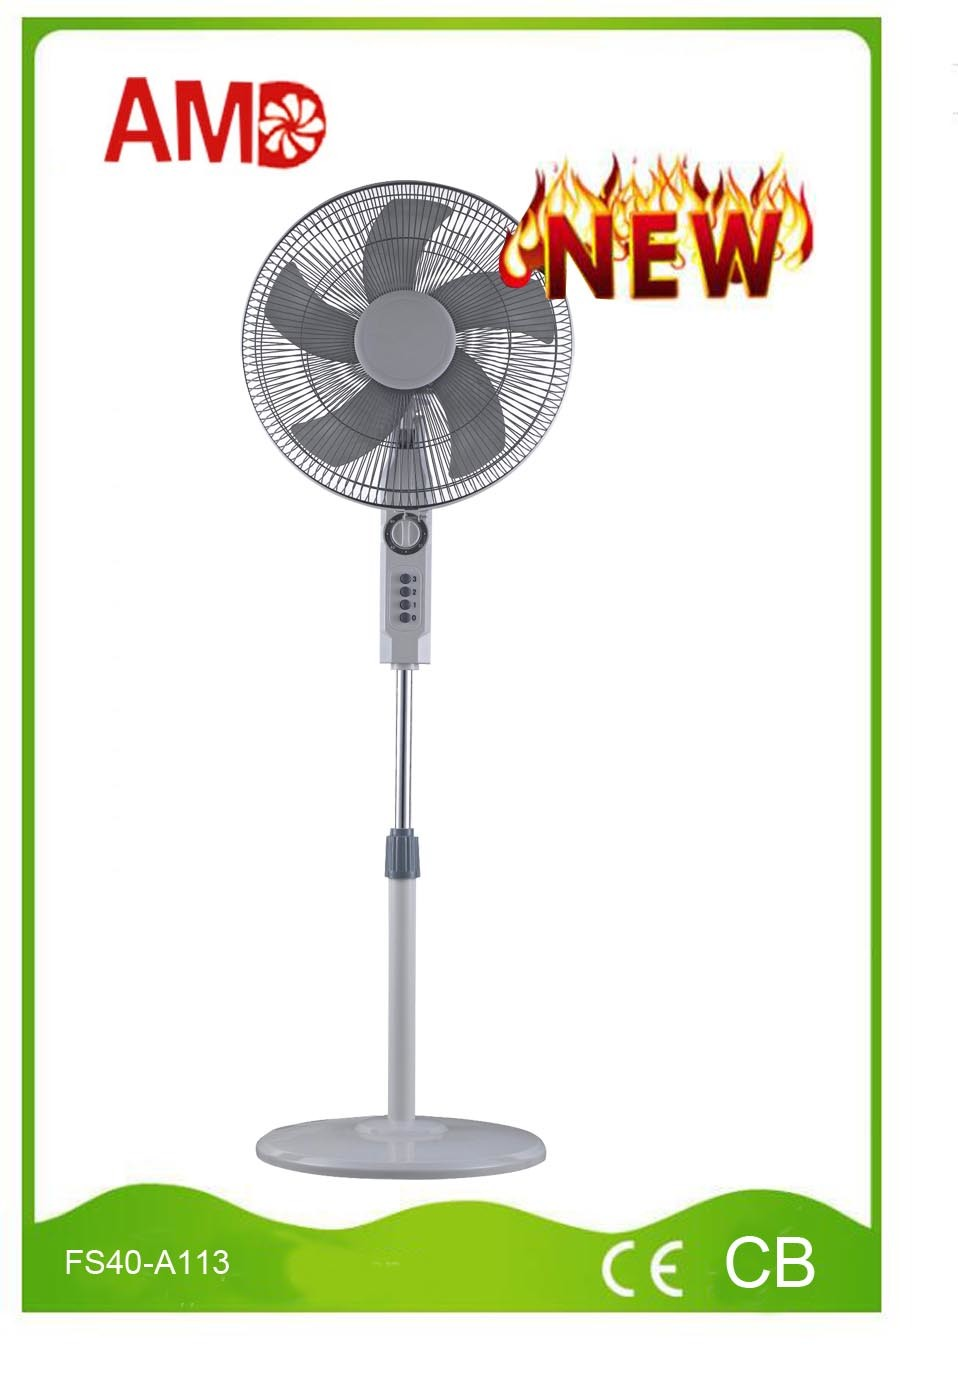 2016 New Design Stand Fan with Ce Approved (FS40-A113)